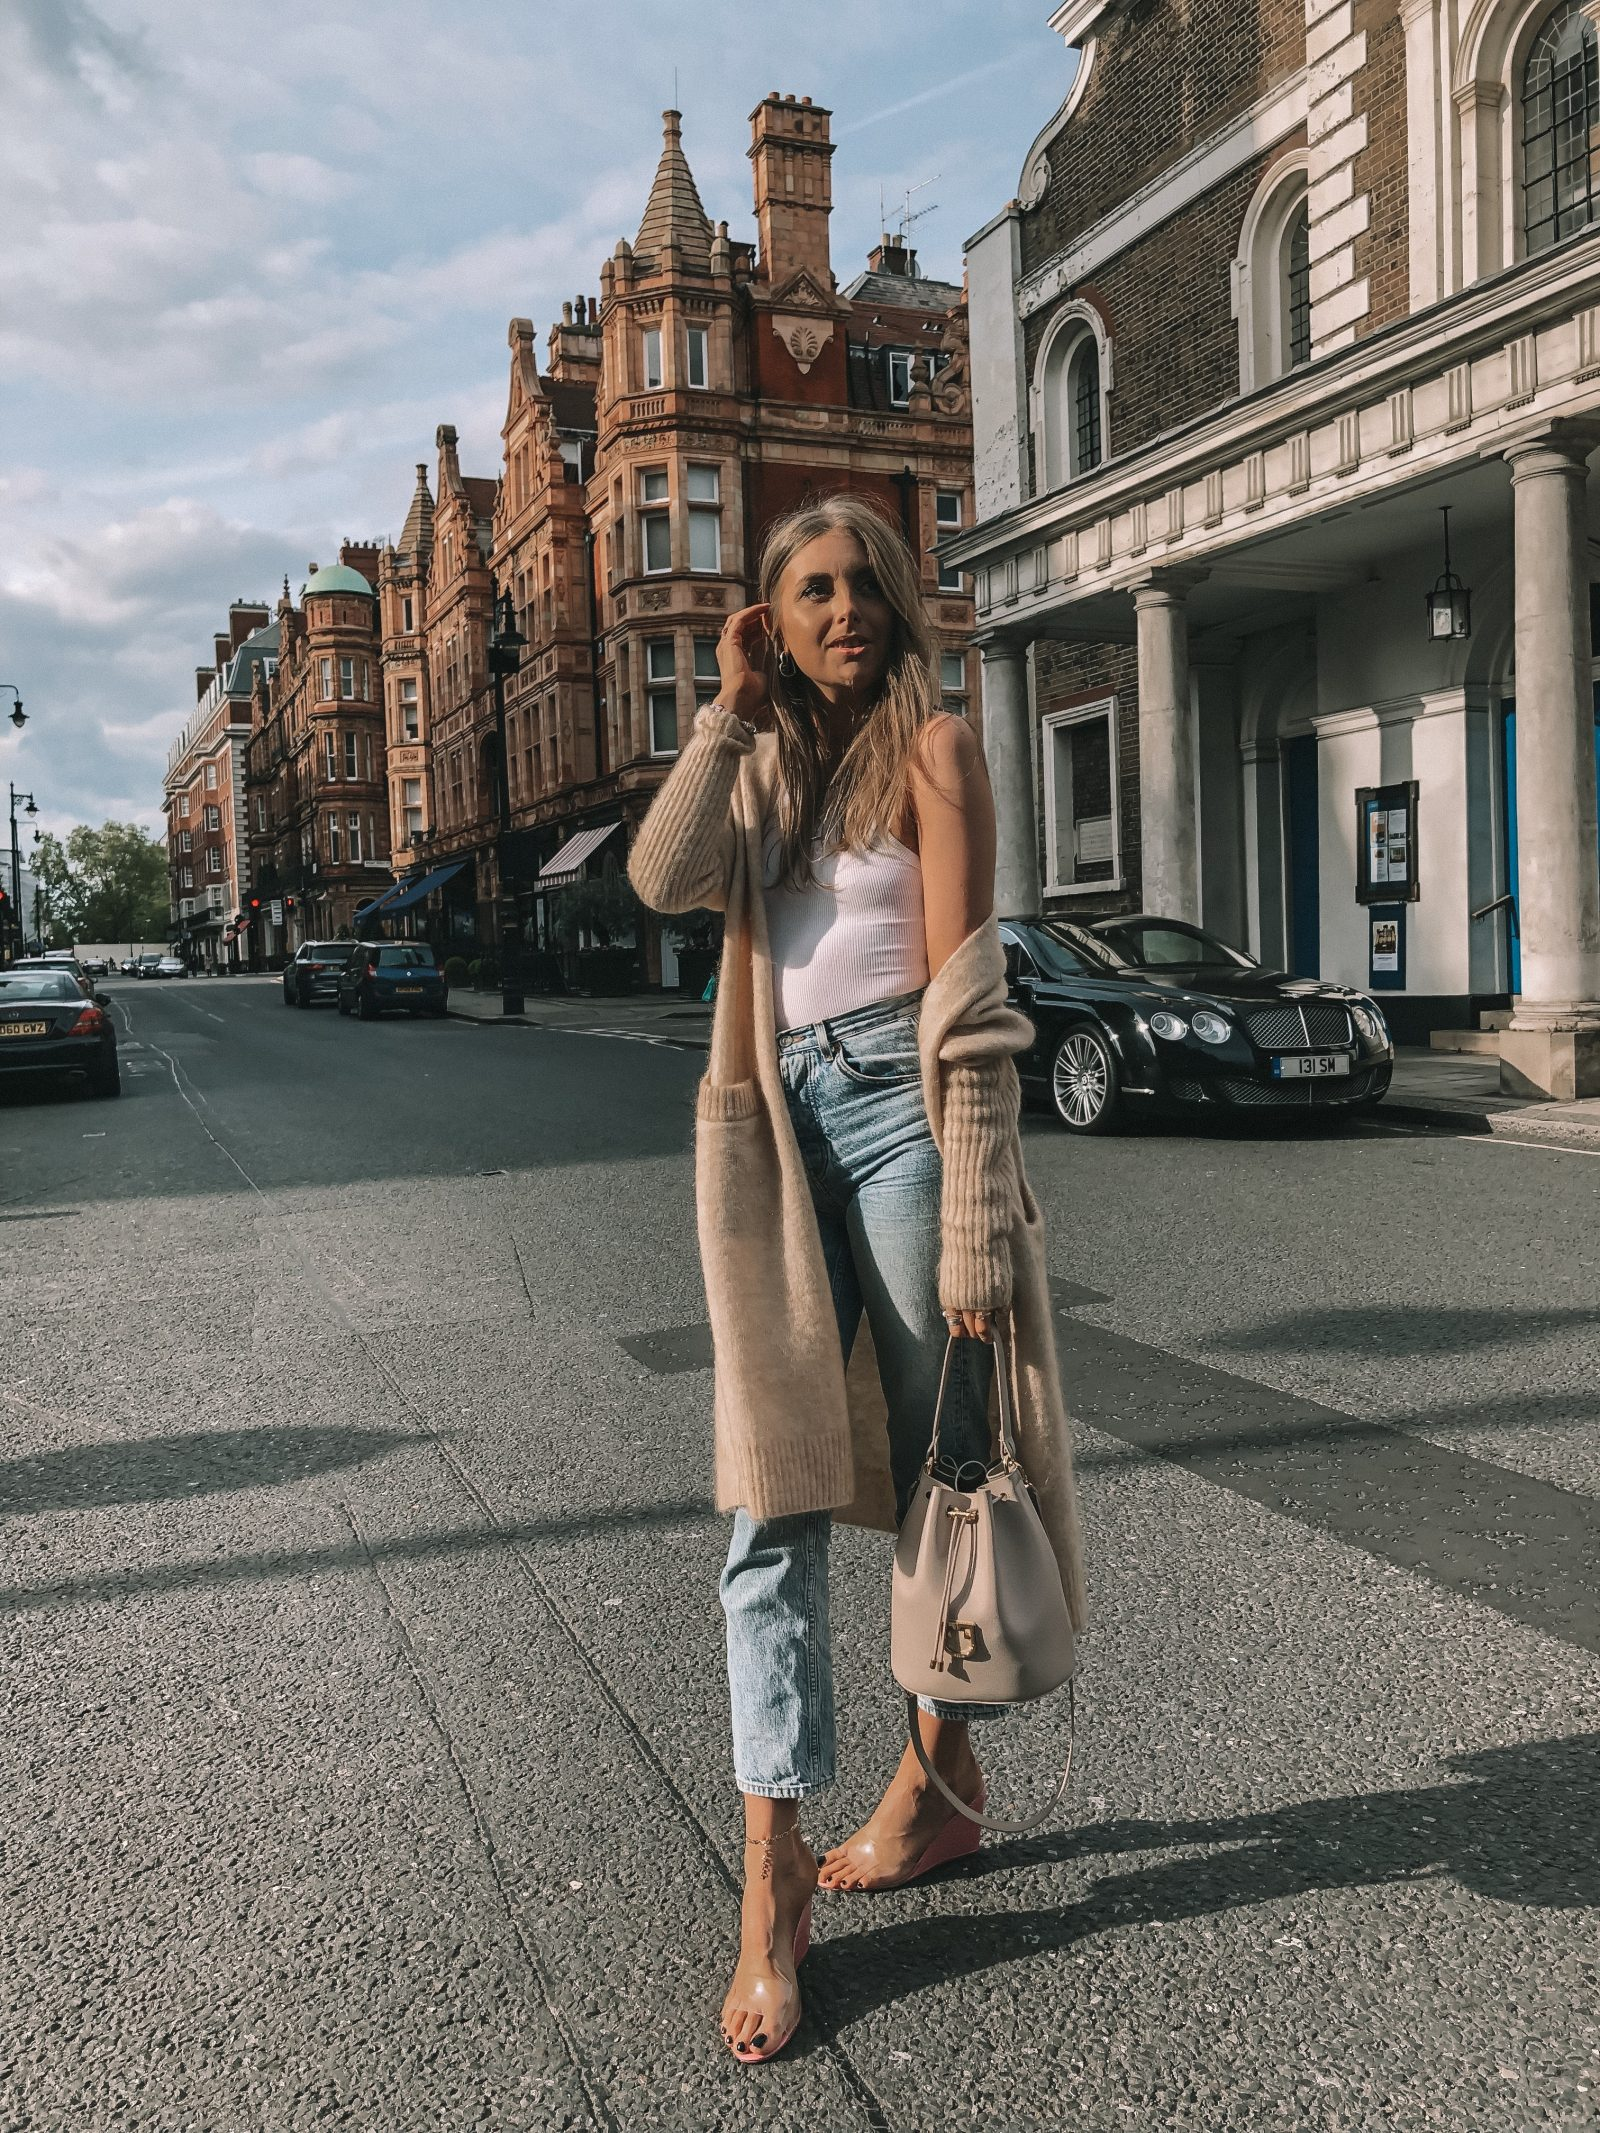 Spring Outfit Idea - Topshop Mom Jeans in Mayfair, London - Topshop Editor Jeans